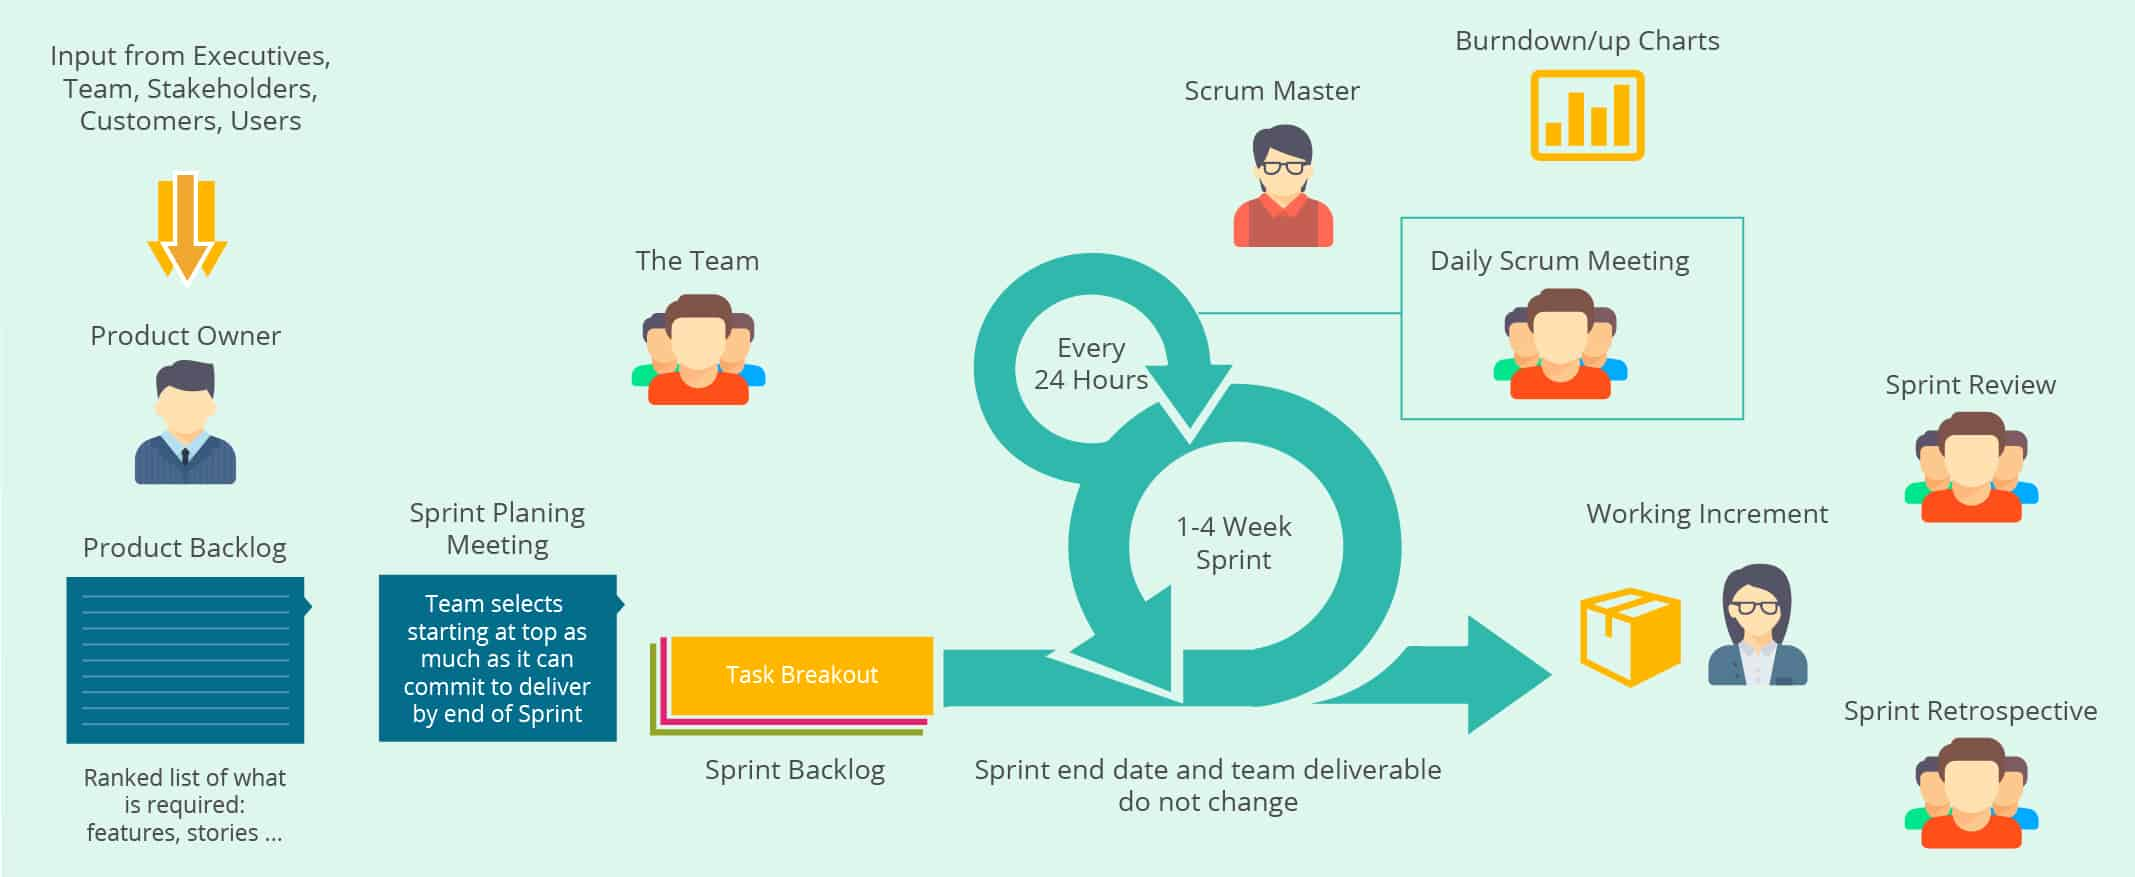 Scrum and Kanban - Are They That Different After All?